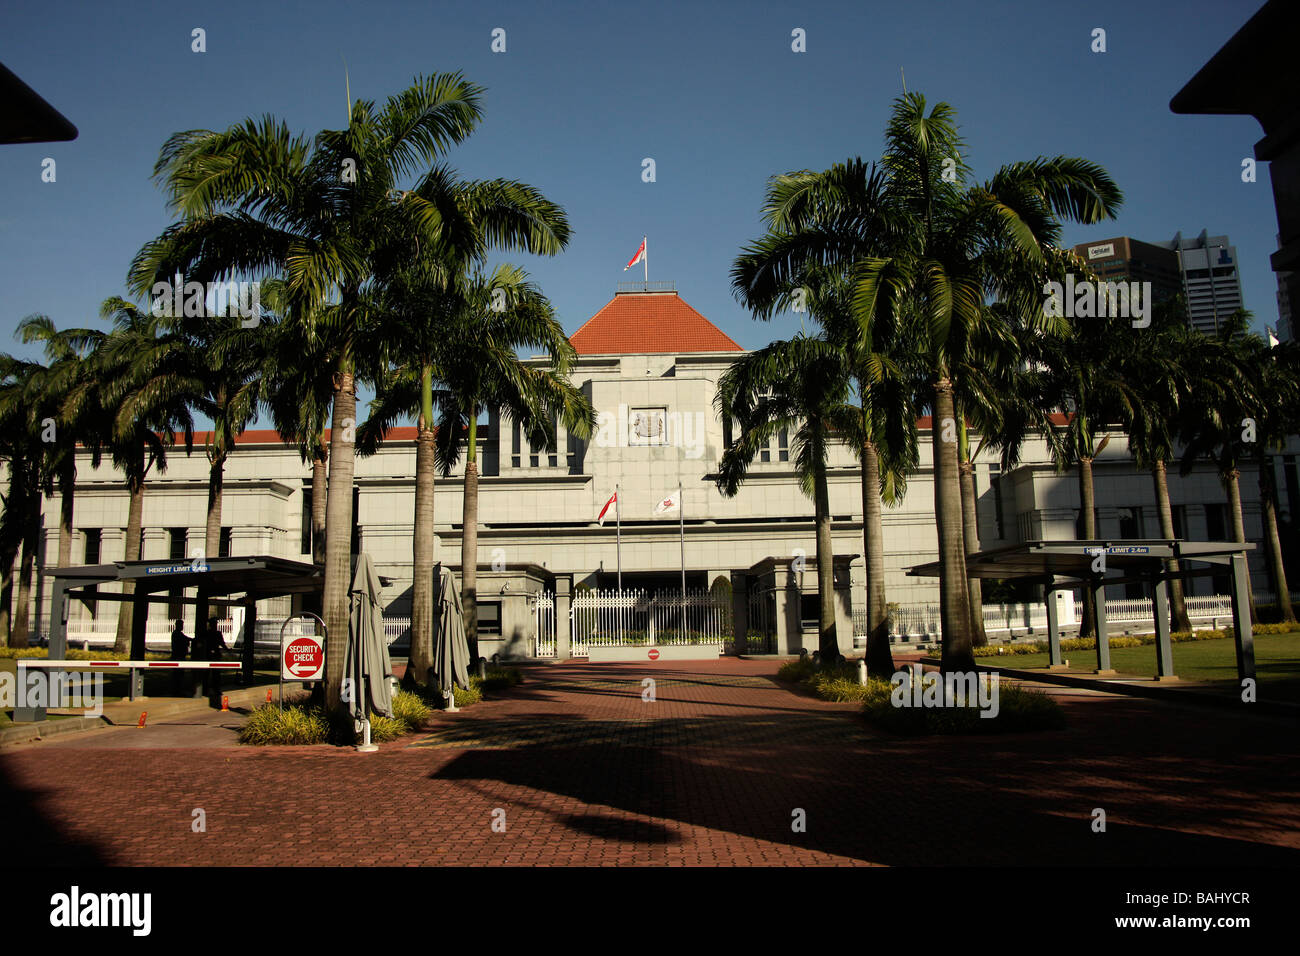 Parliament building in Singapore - Stock Image